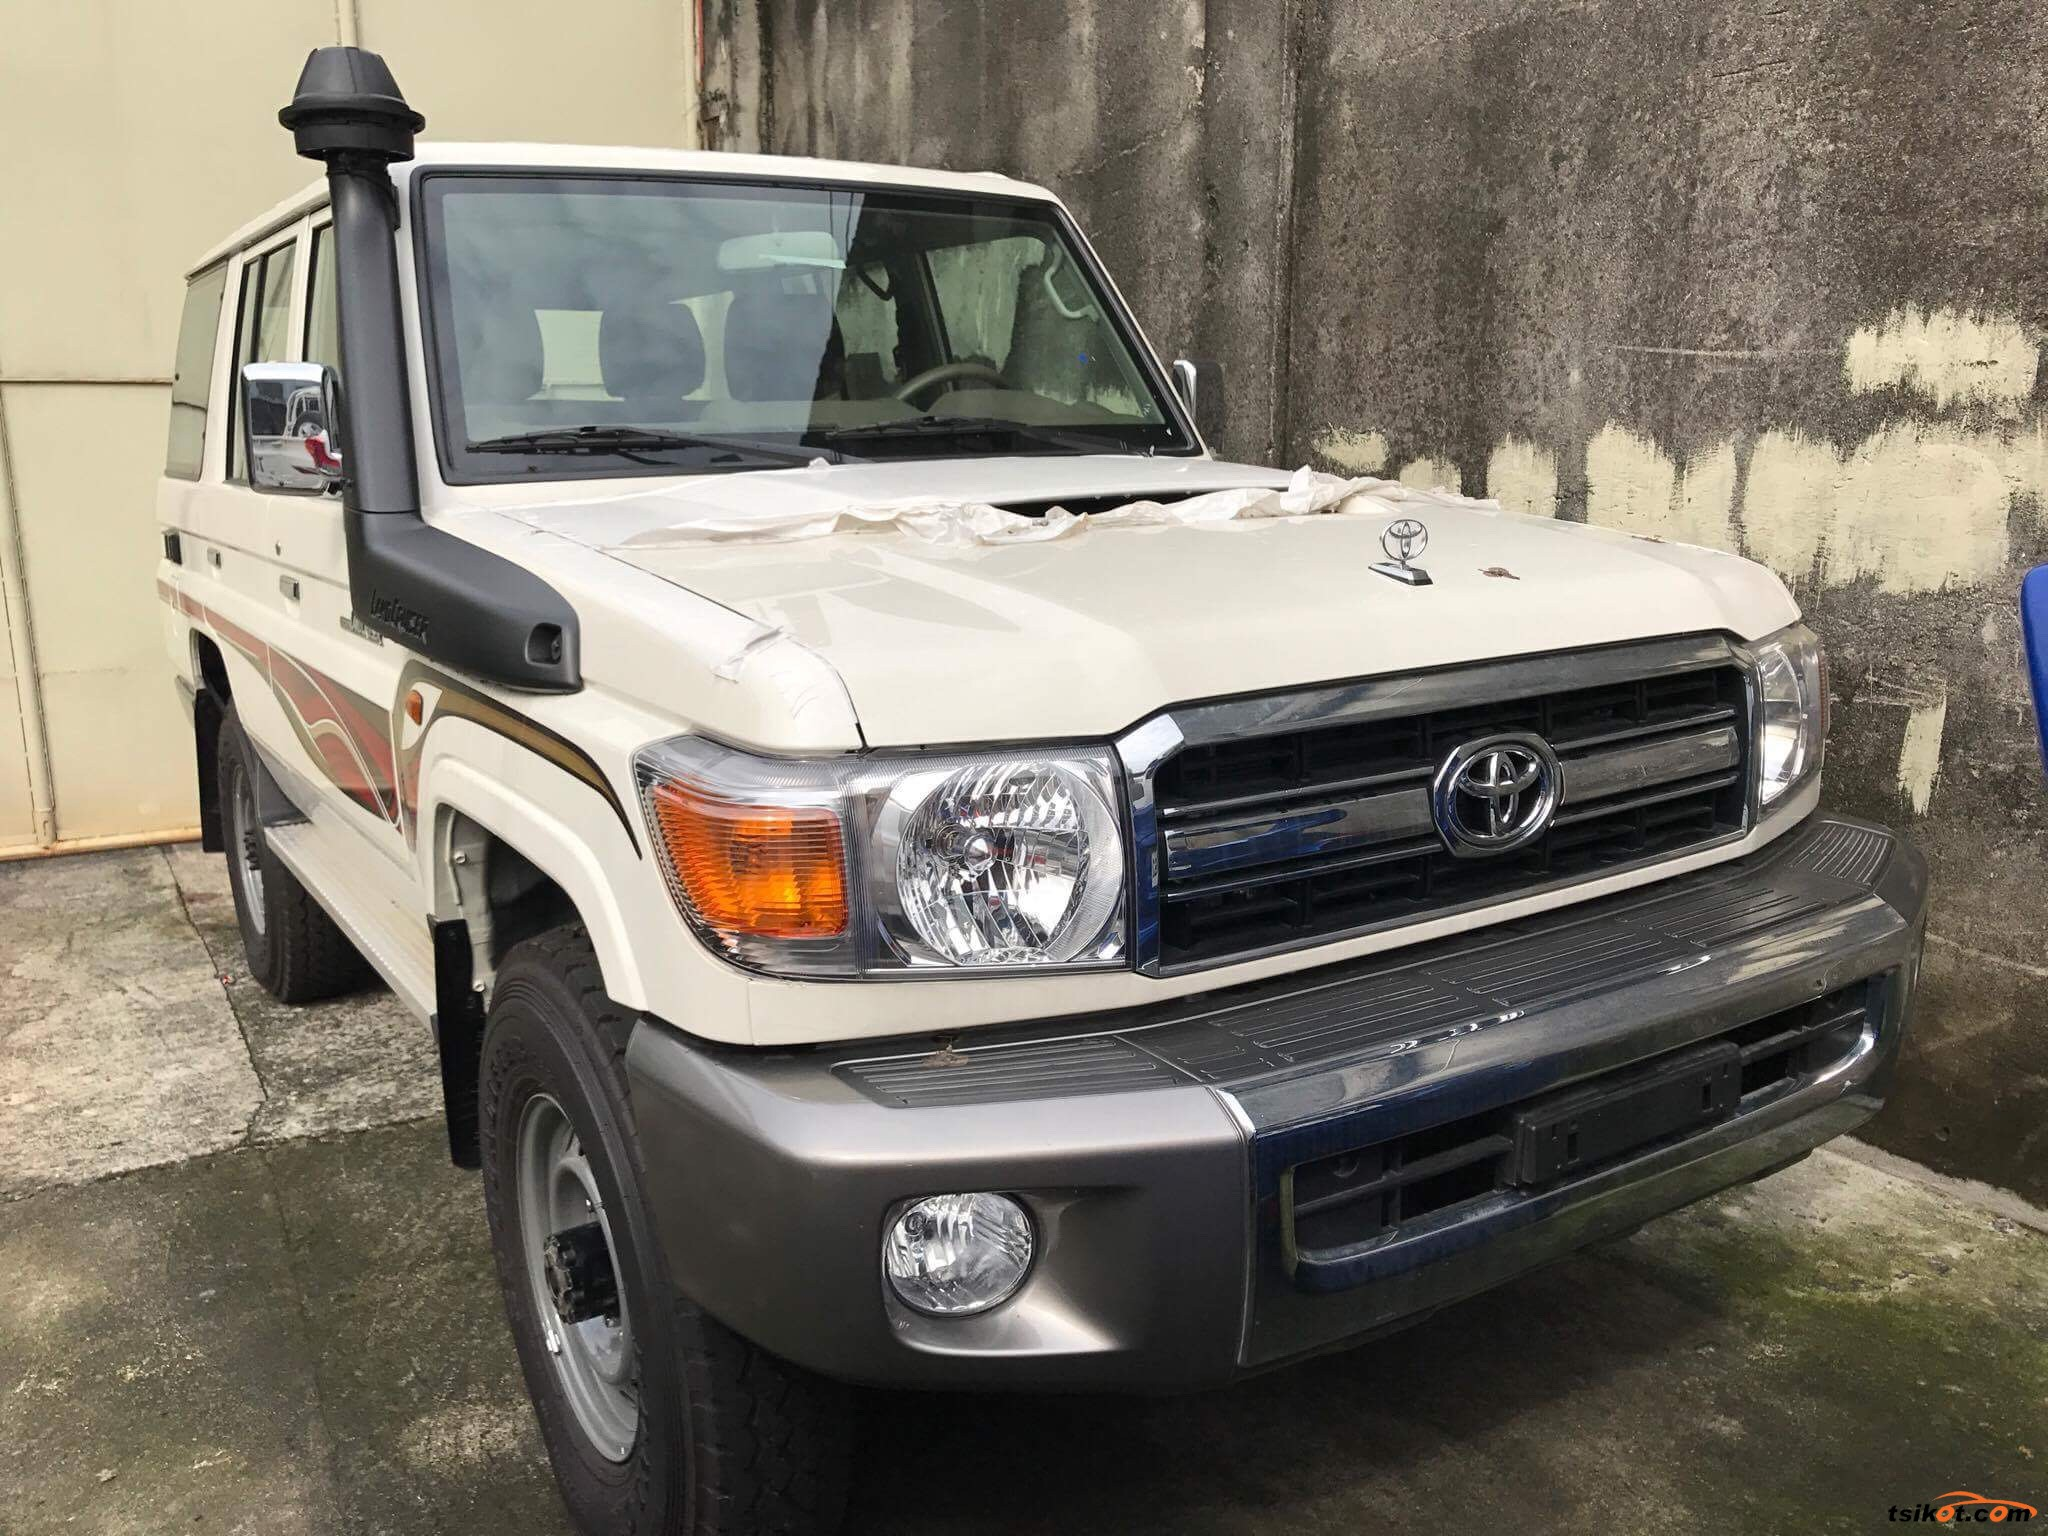 toyota land cruiser 2017 car for sale metro manila philippines. Black Bedroom Furniture Sets. Home Design Ideas